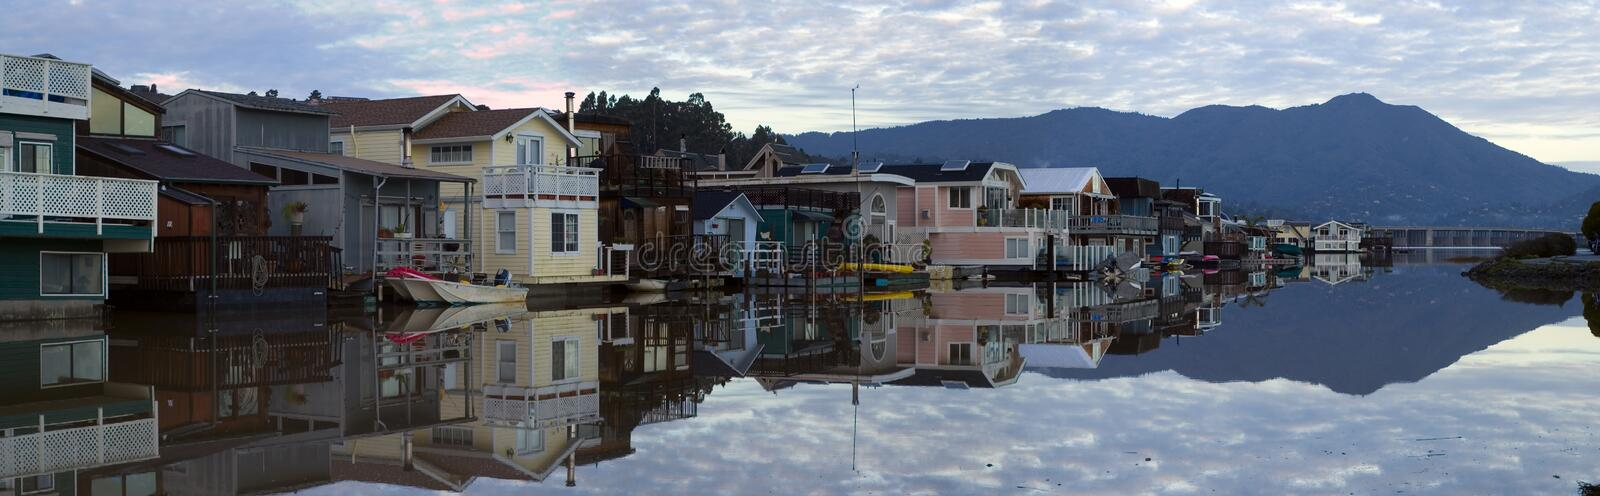 Life on the water - Sausalito 1 royalty free stock image